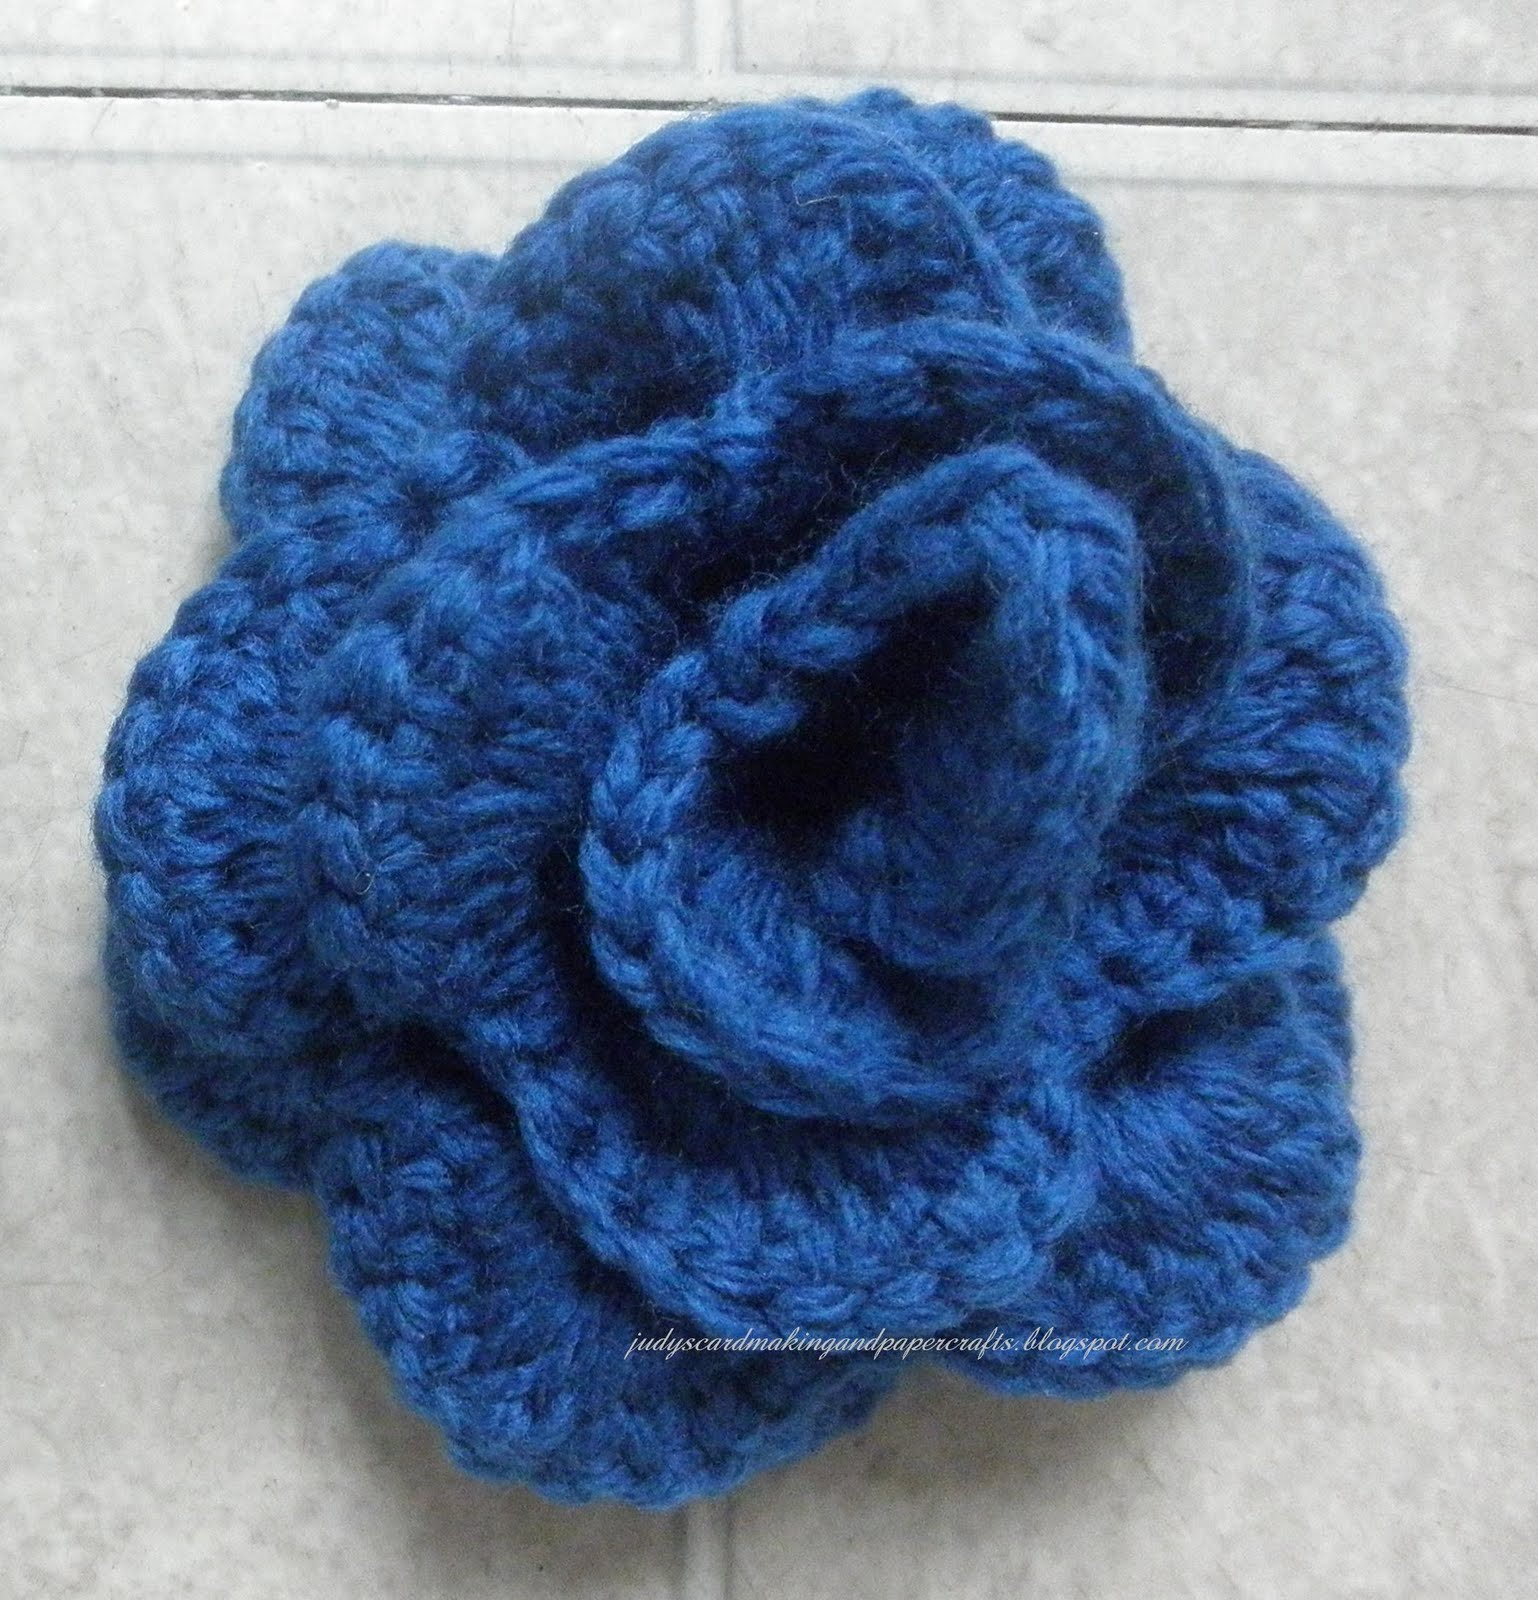 Crochet Rose Pattern : Crochet Roses by Charisse - Fun Crochet: Learn to Crochet the Fun